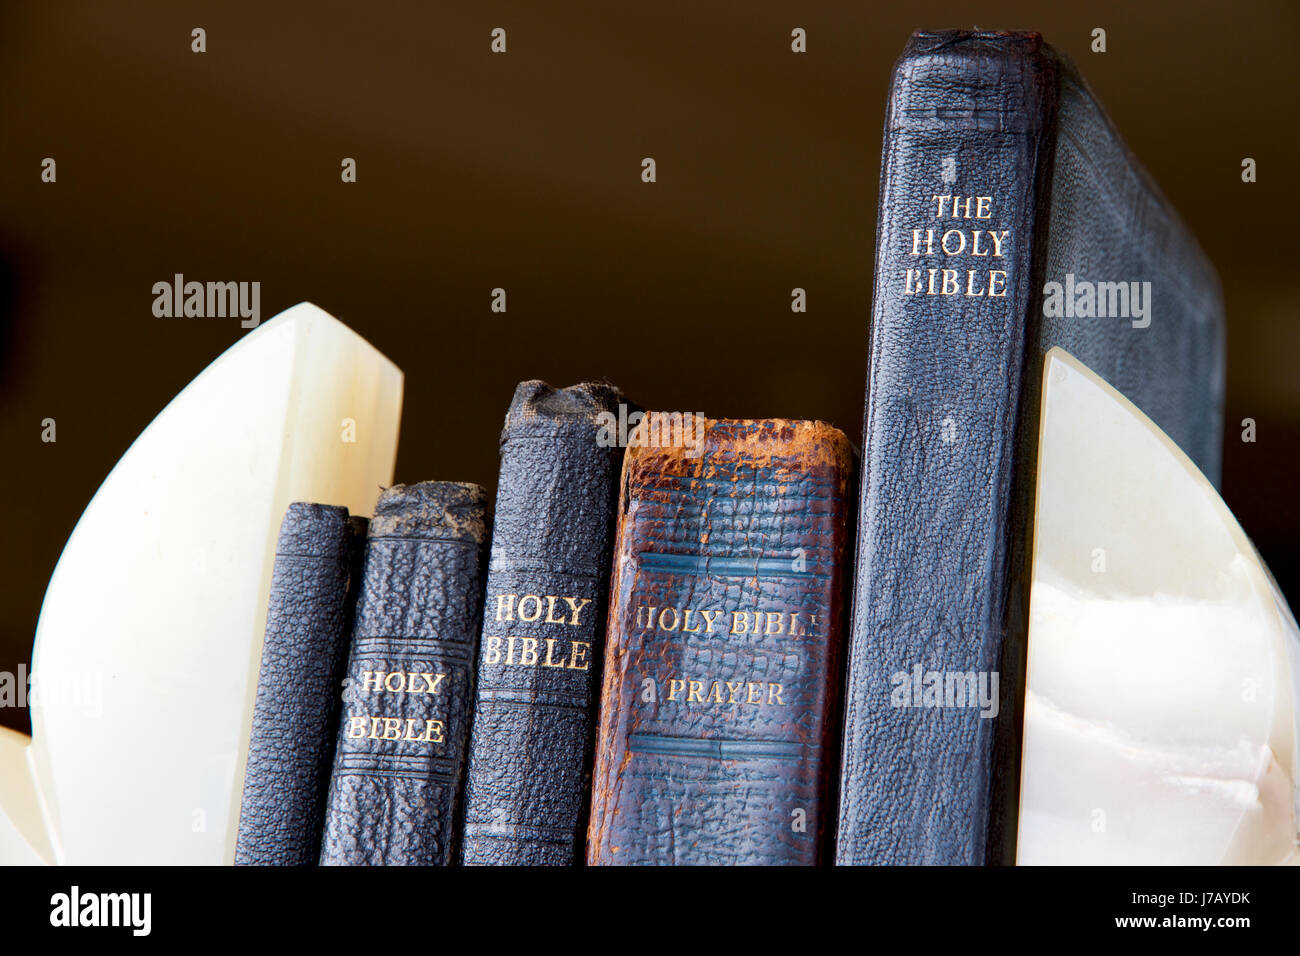 Vintage Leather Look Jeremiah Verse Bible Book Cover Large: Old Bibles And Prayer Books Stock Photo: 142226607